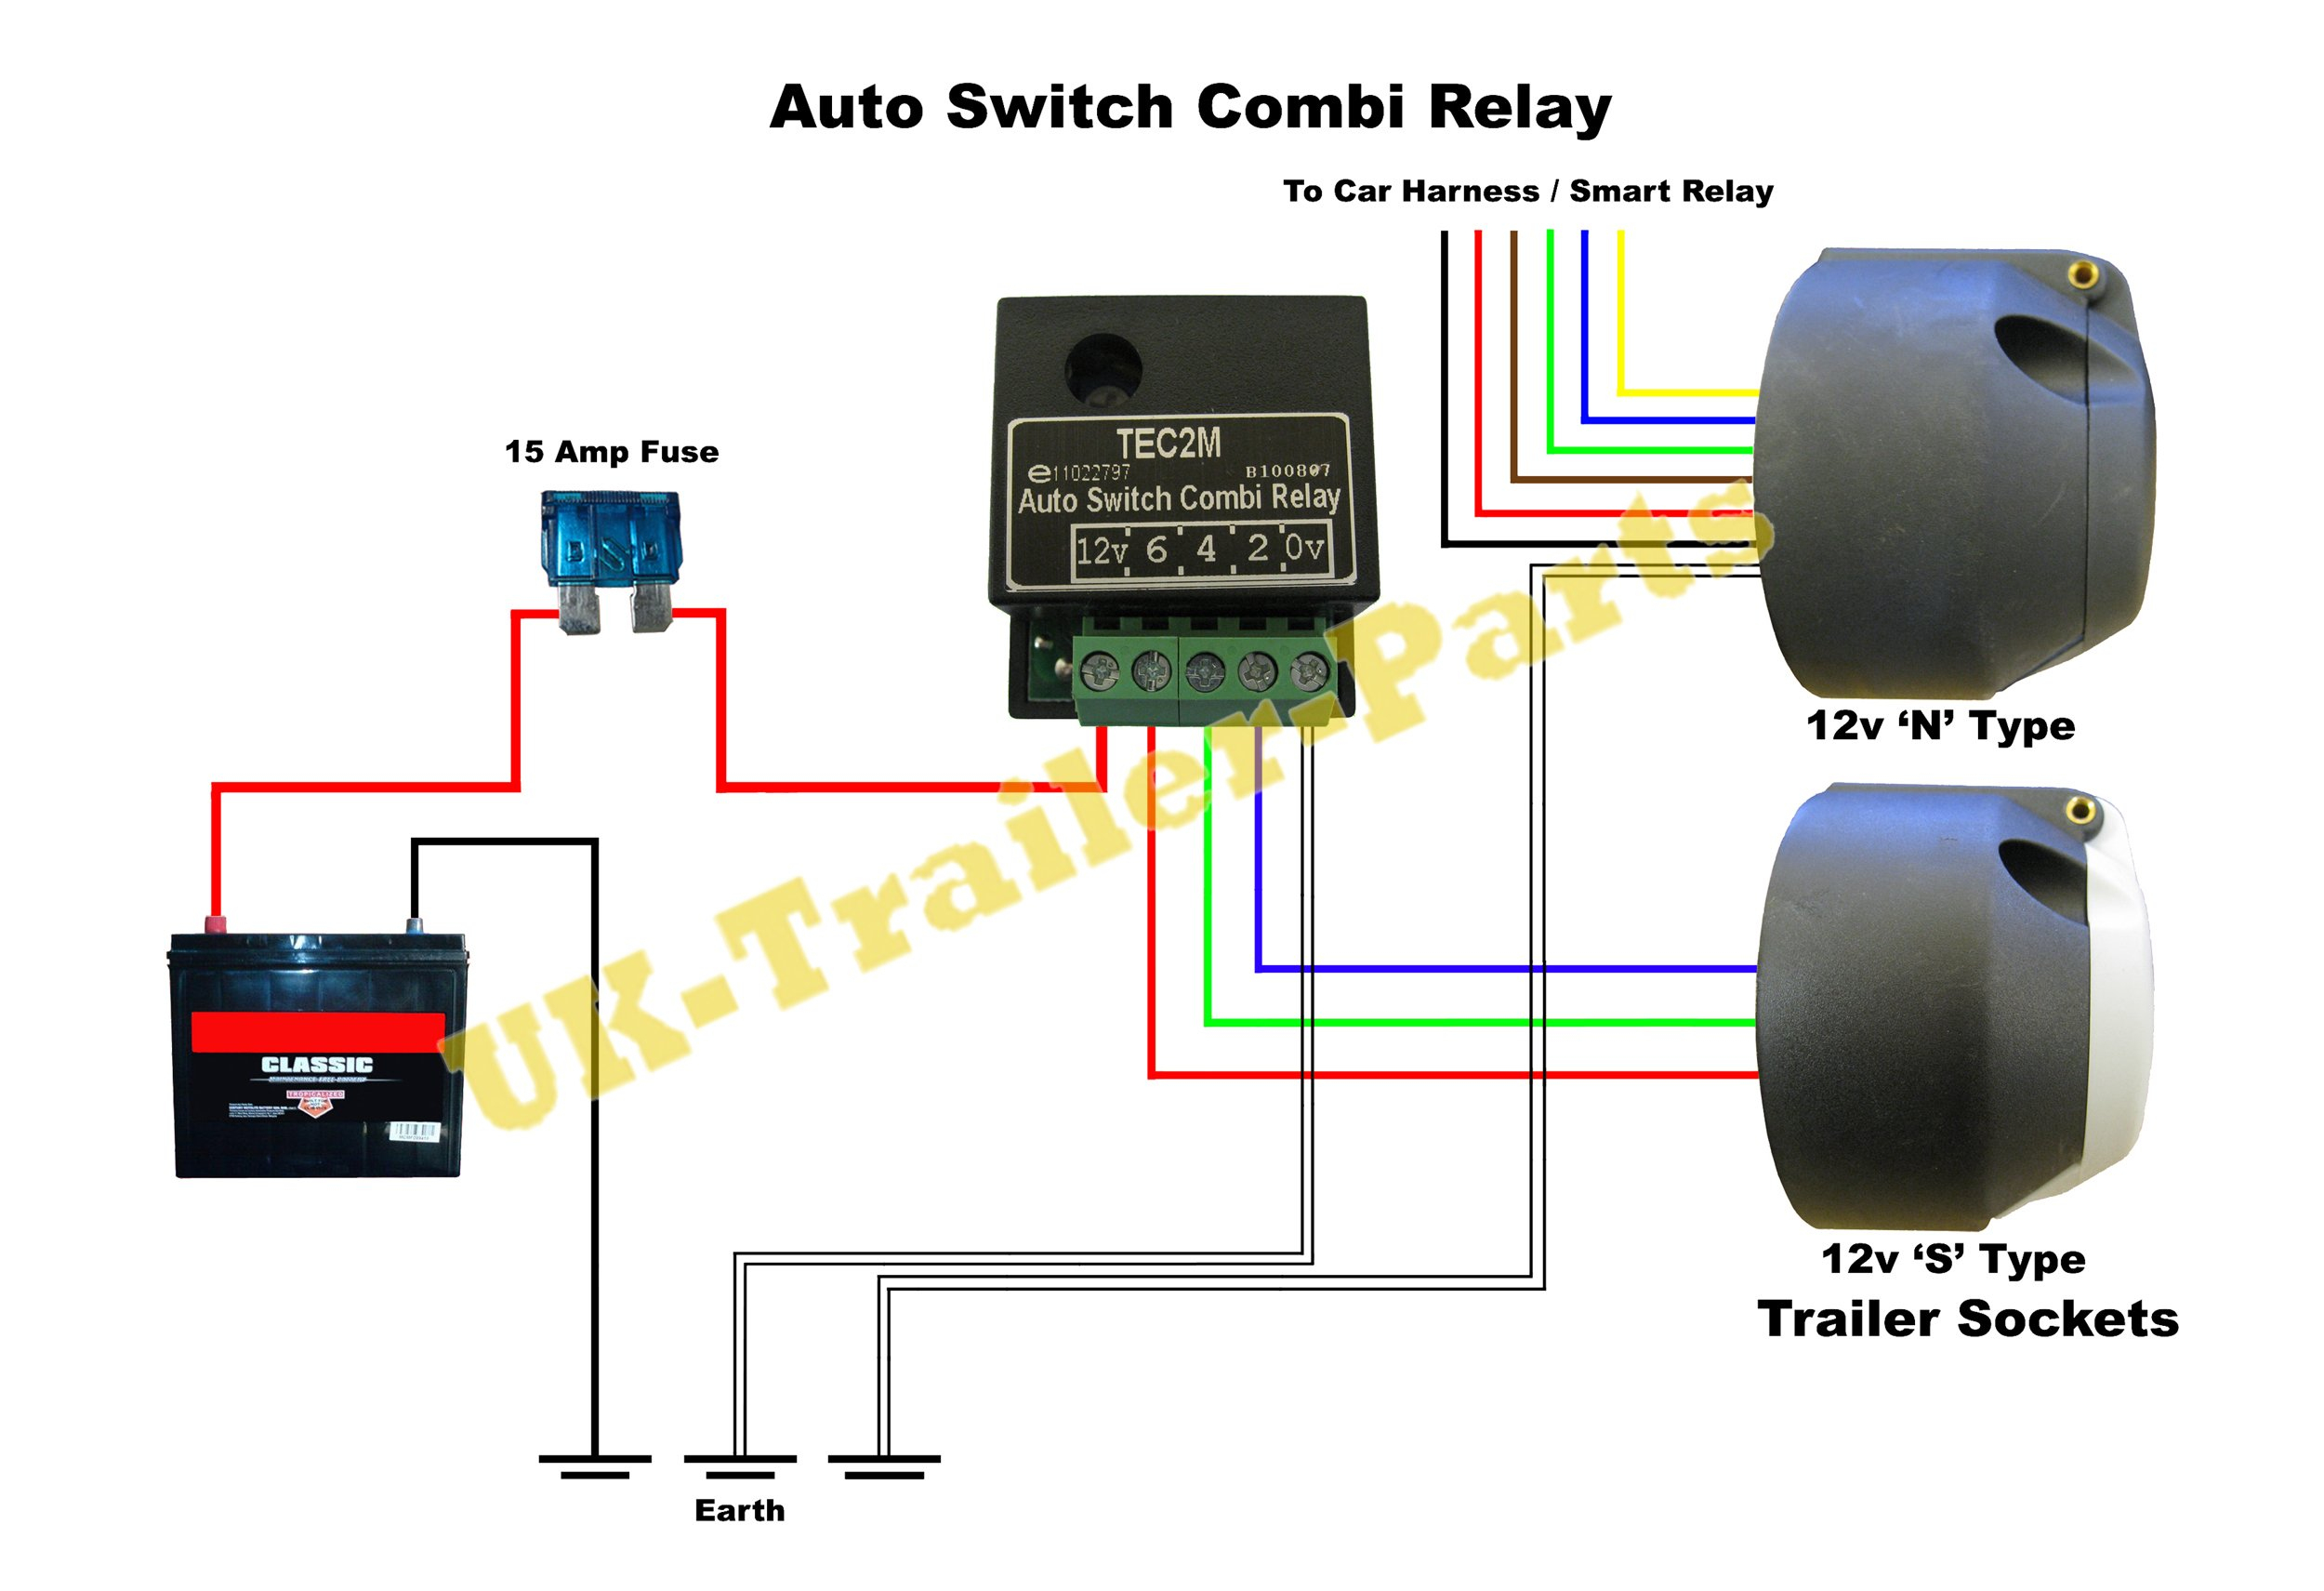 All Posts Page For Uk-Trailer-Parts.co.uk | Uk-Trailer-Parts - Part 3 - 24V Trailer Socket Wiring Diagram Uk